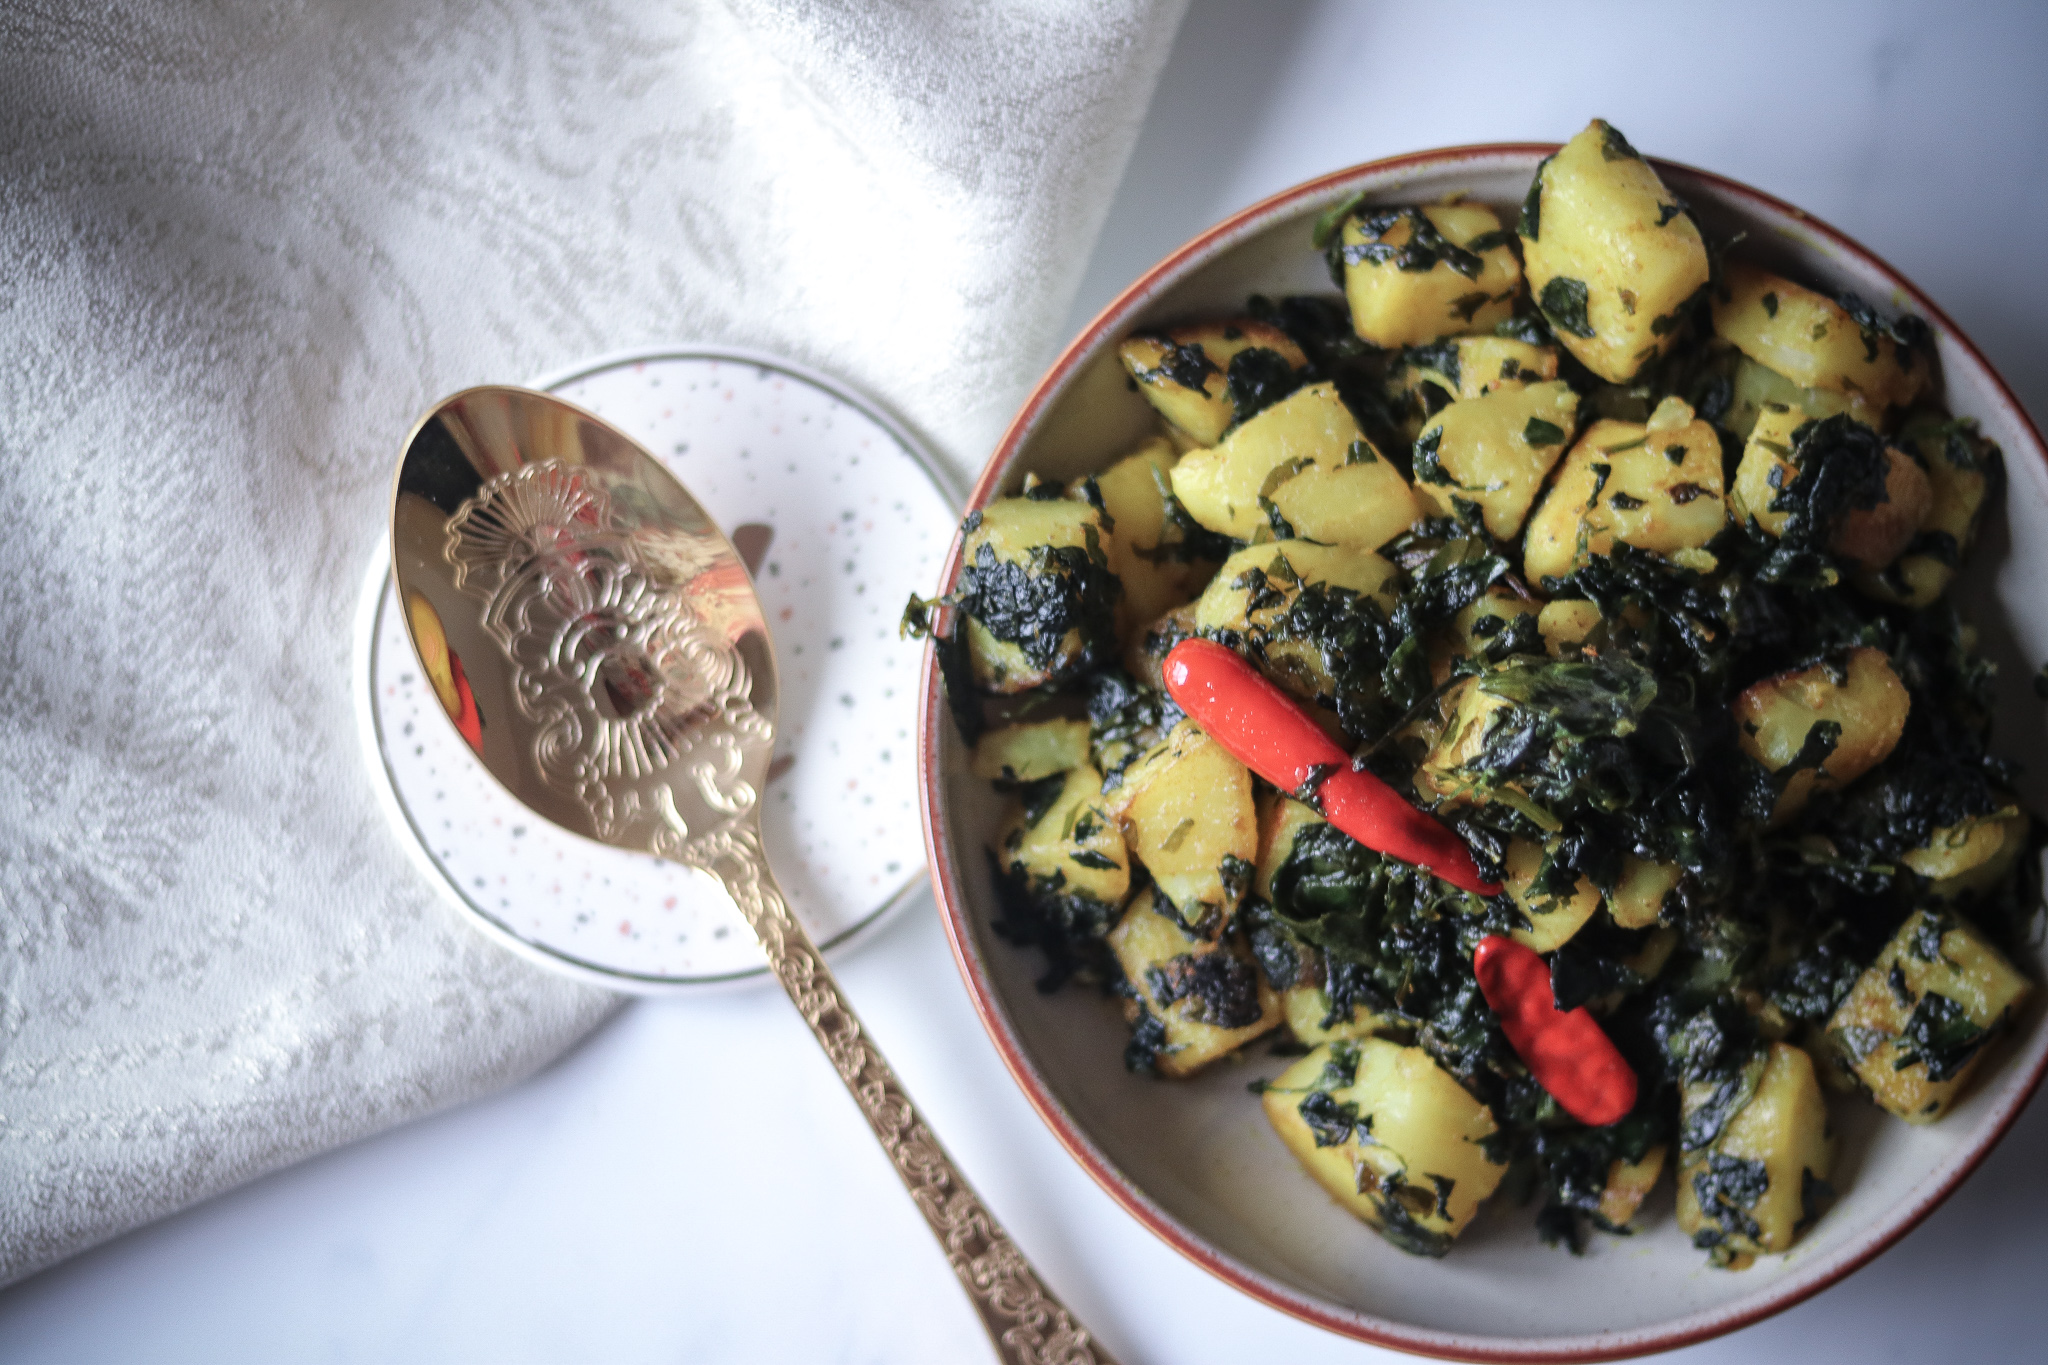 aloo methi/ sautéed potatoes and fenugreek leaves